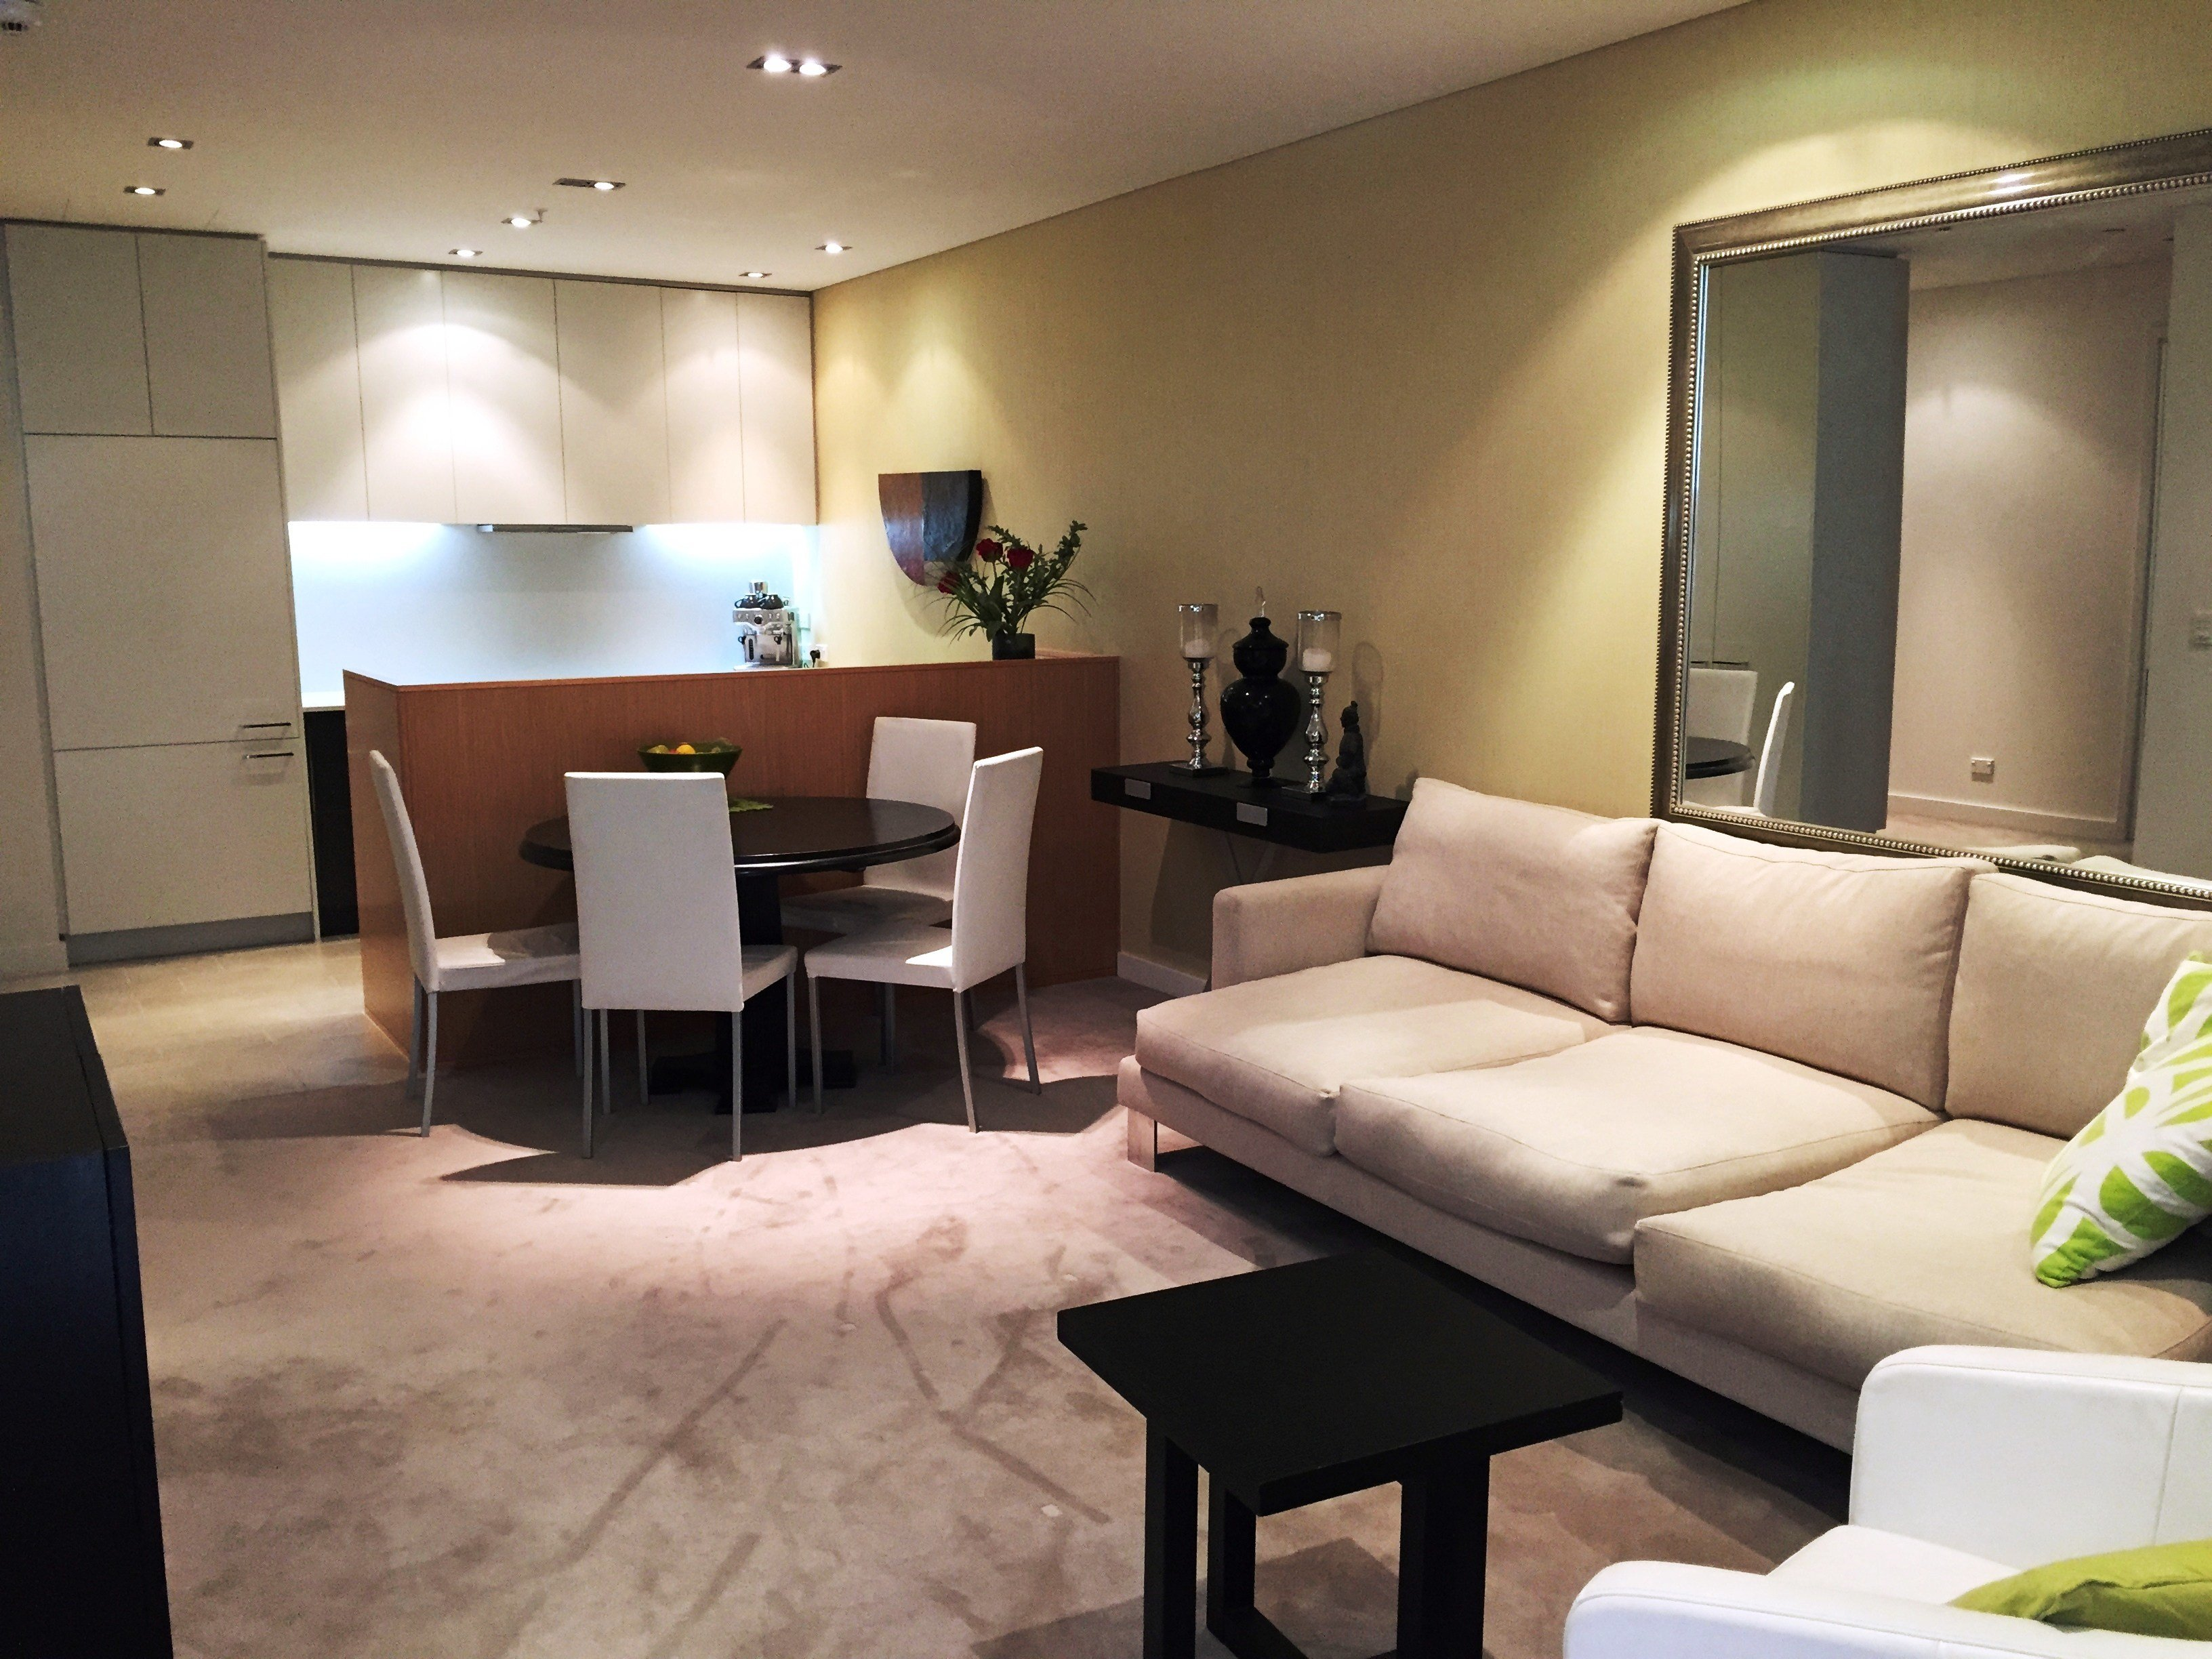 Best Executive Quality Stamford Plaza Auckland Cbd 1 Bedroom With Pictures Original 1024 x 768